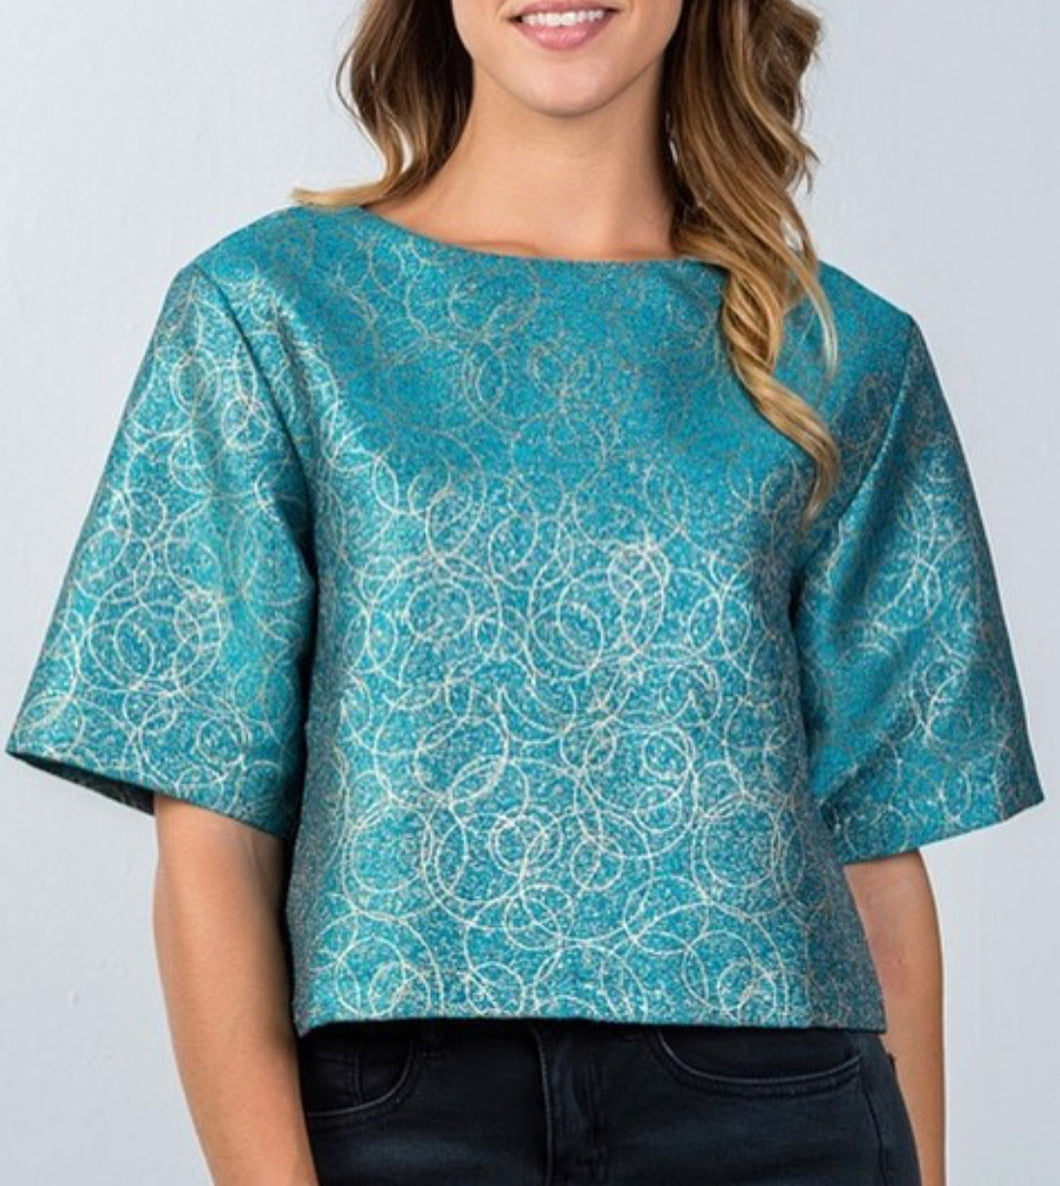 Teal Oversized Blouse